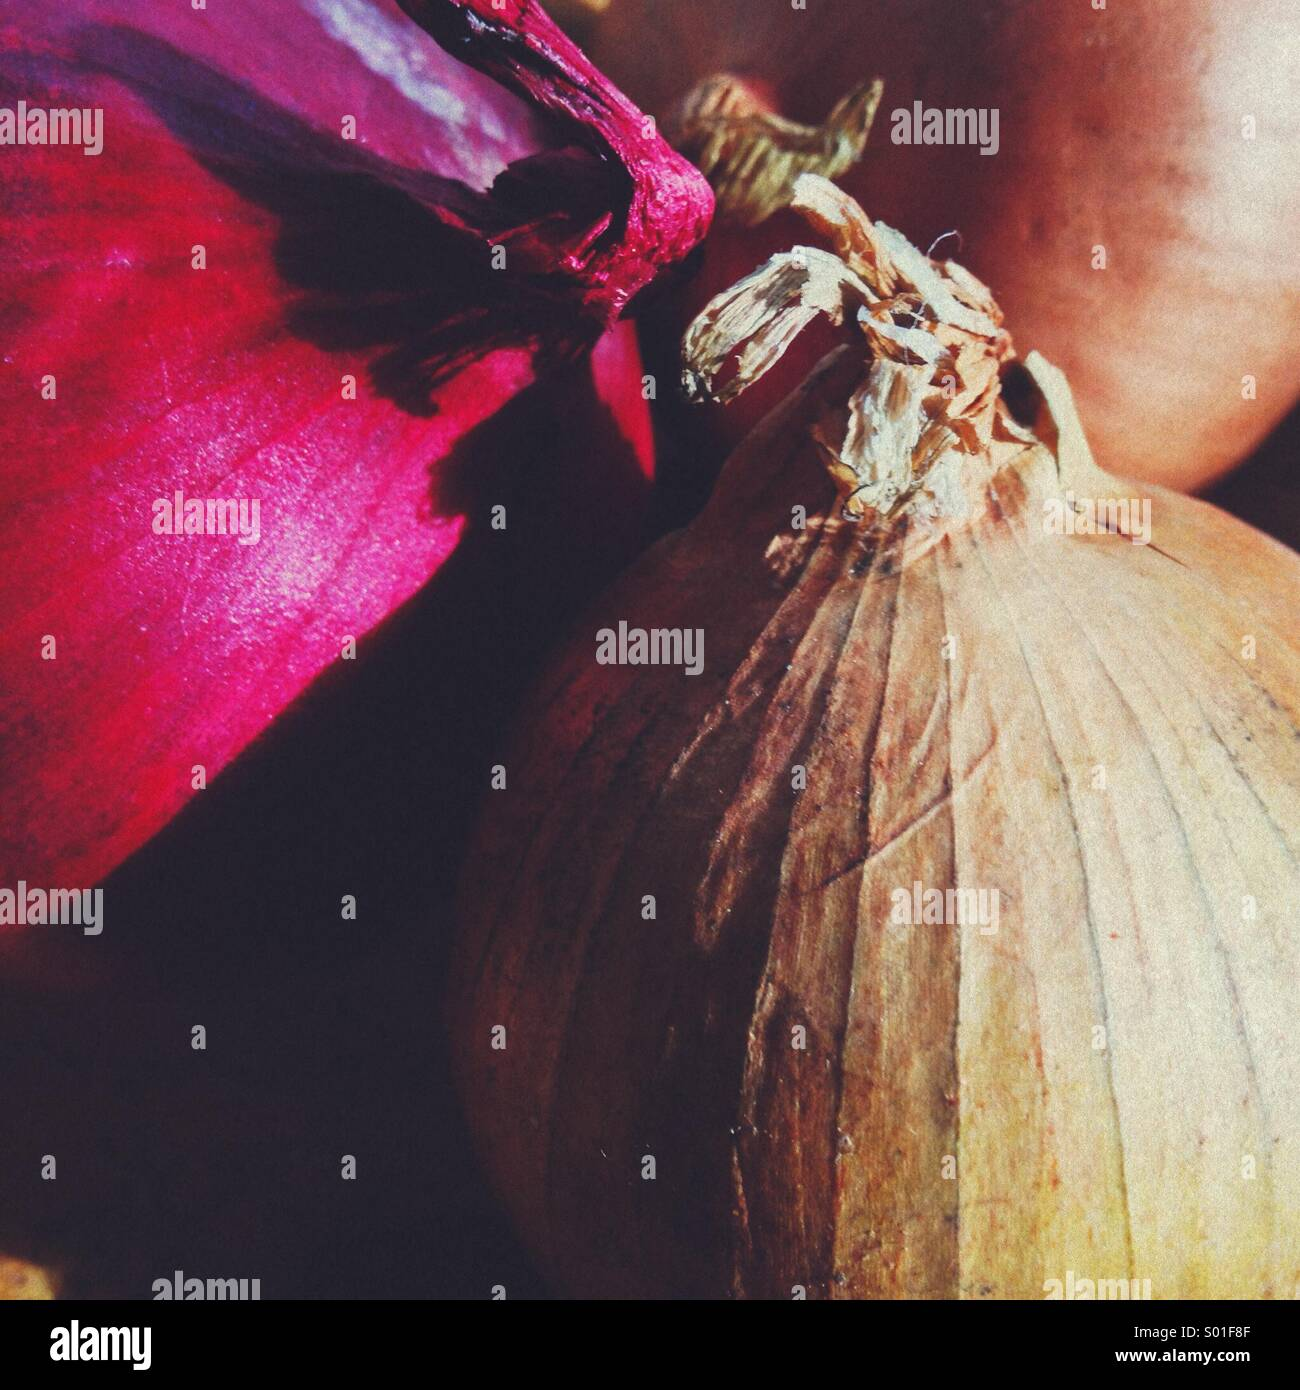 Red and White onion - Stock Image